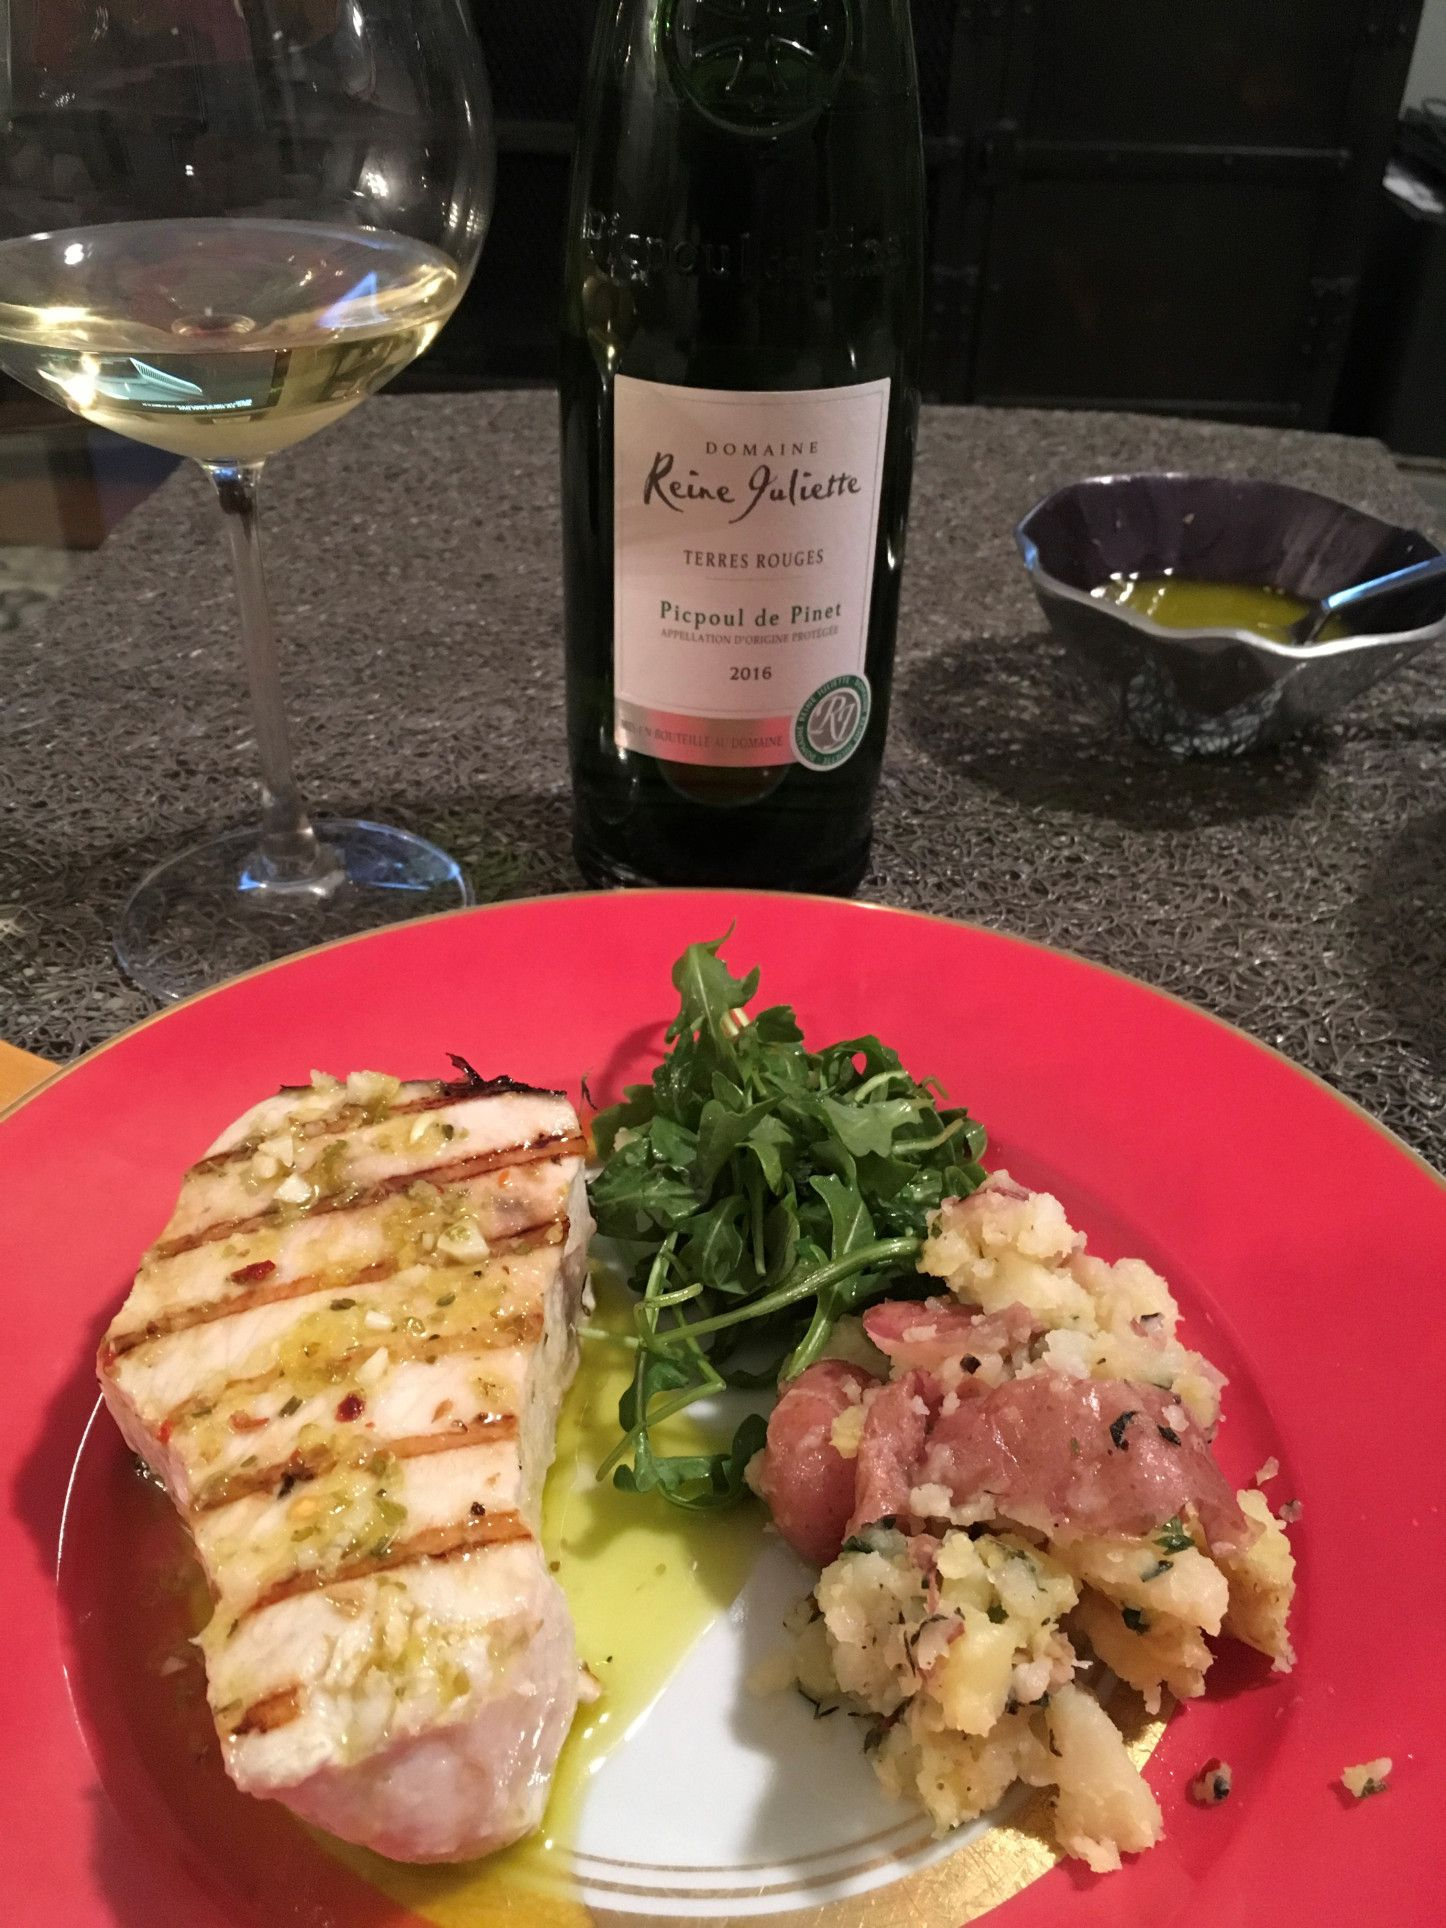 Swordfish And Picpoul On The Table